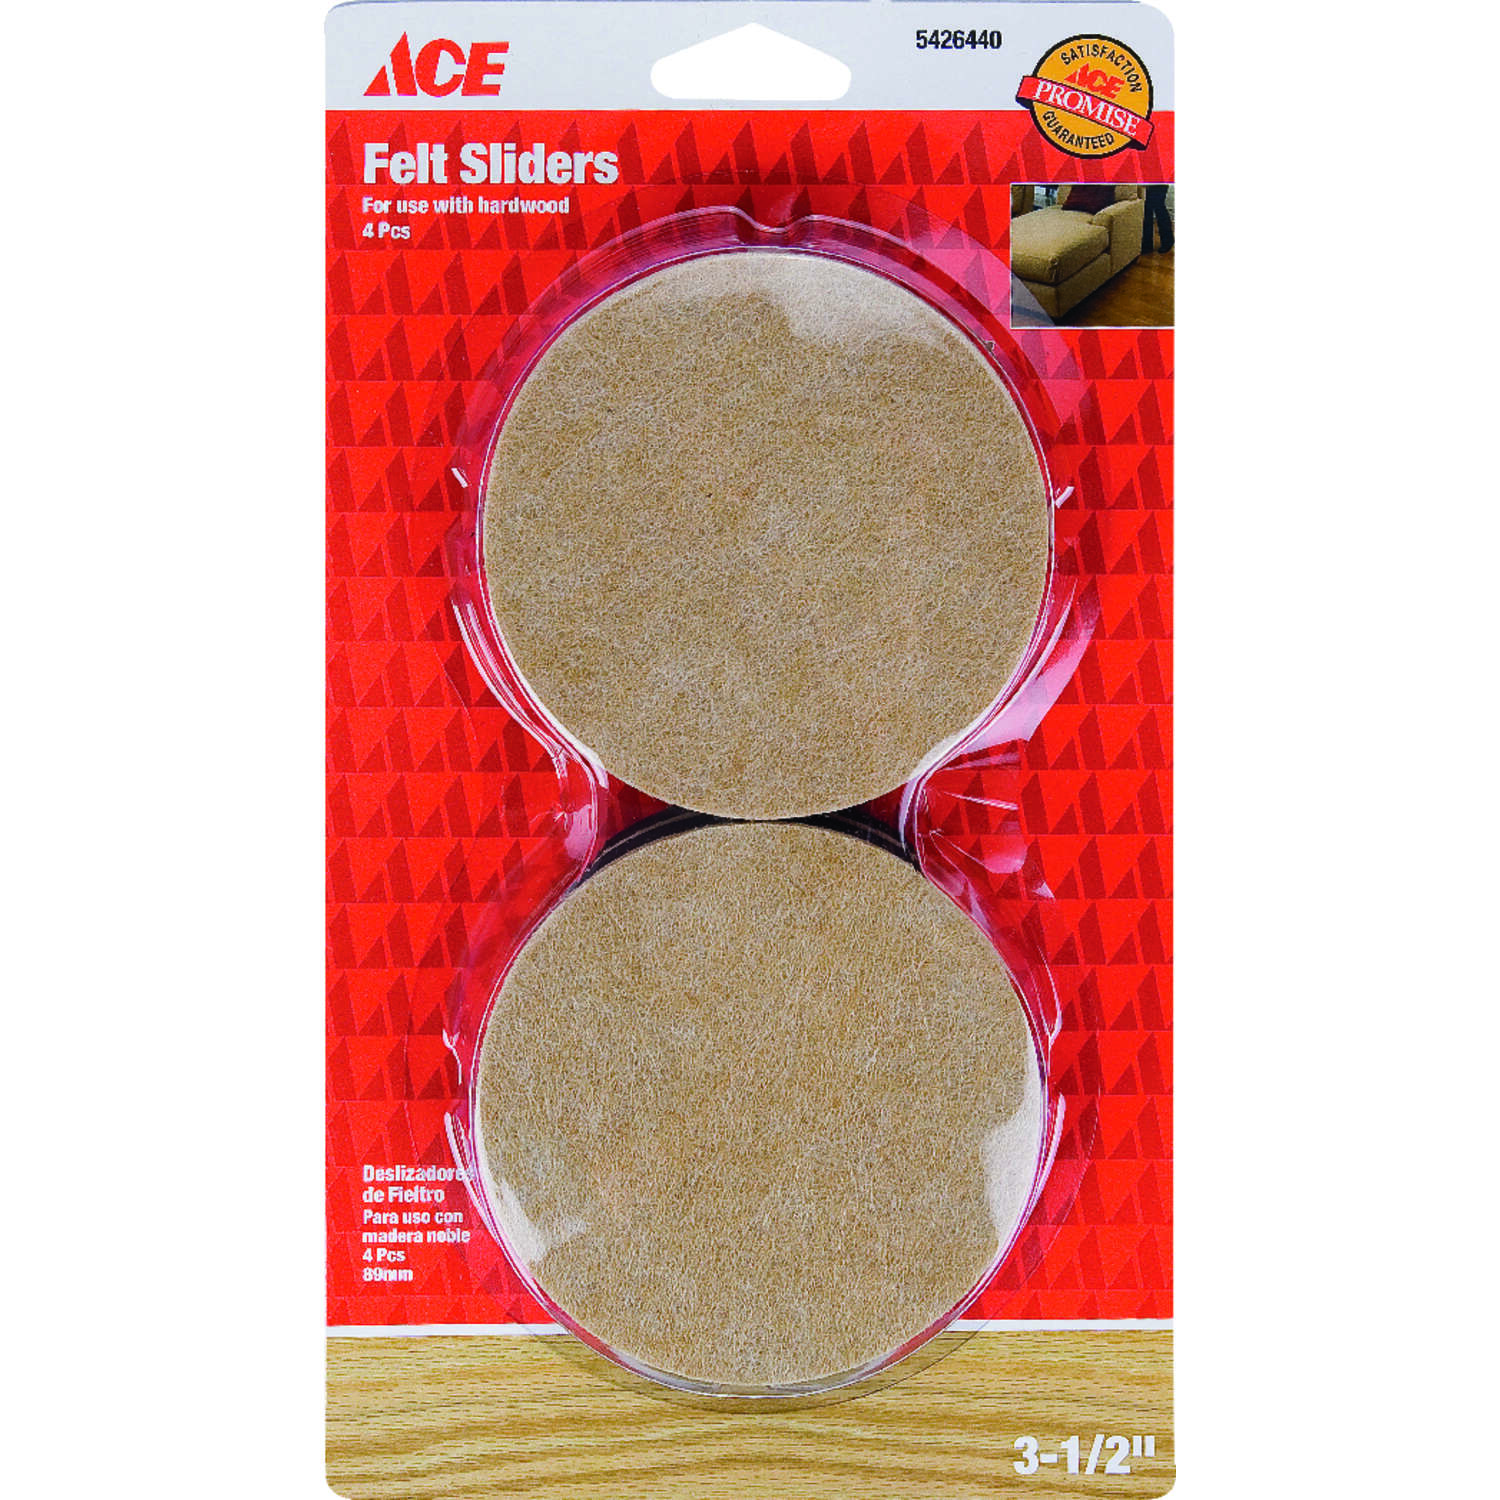 Ace  Felt  Slide Glide  Round  Brown  3-1/2 in. W 4 pk Self Adhesive